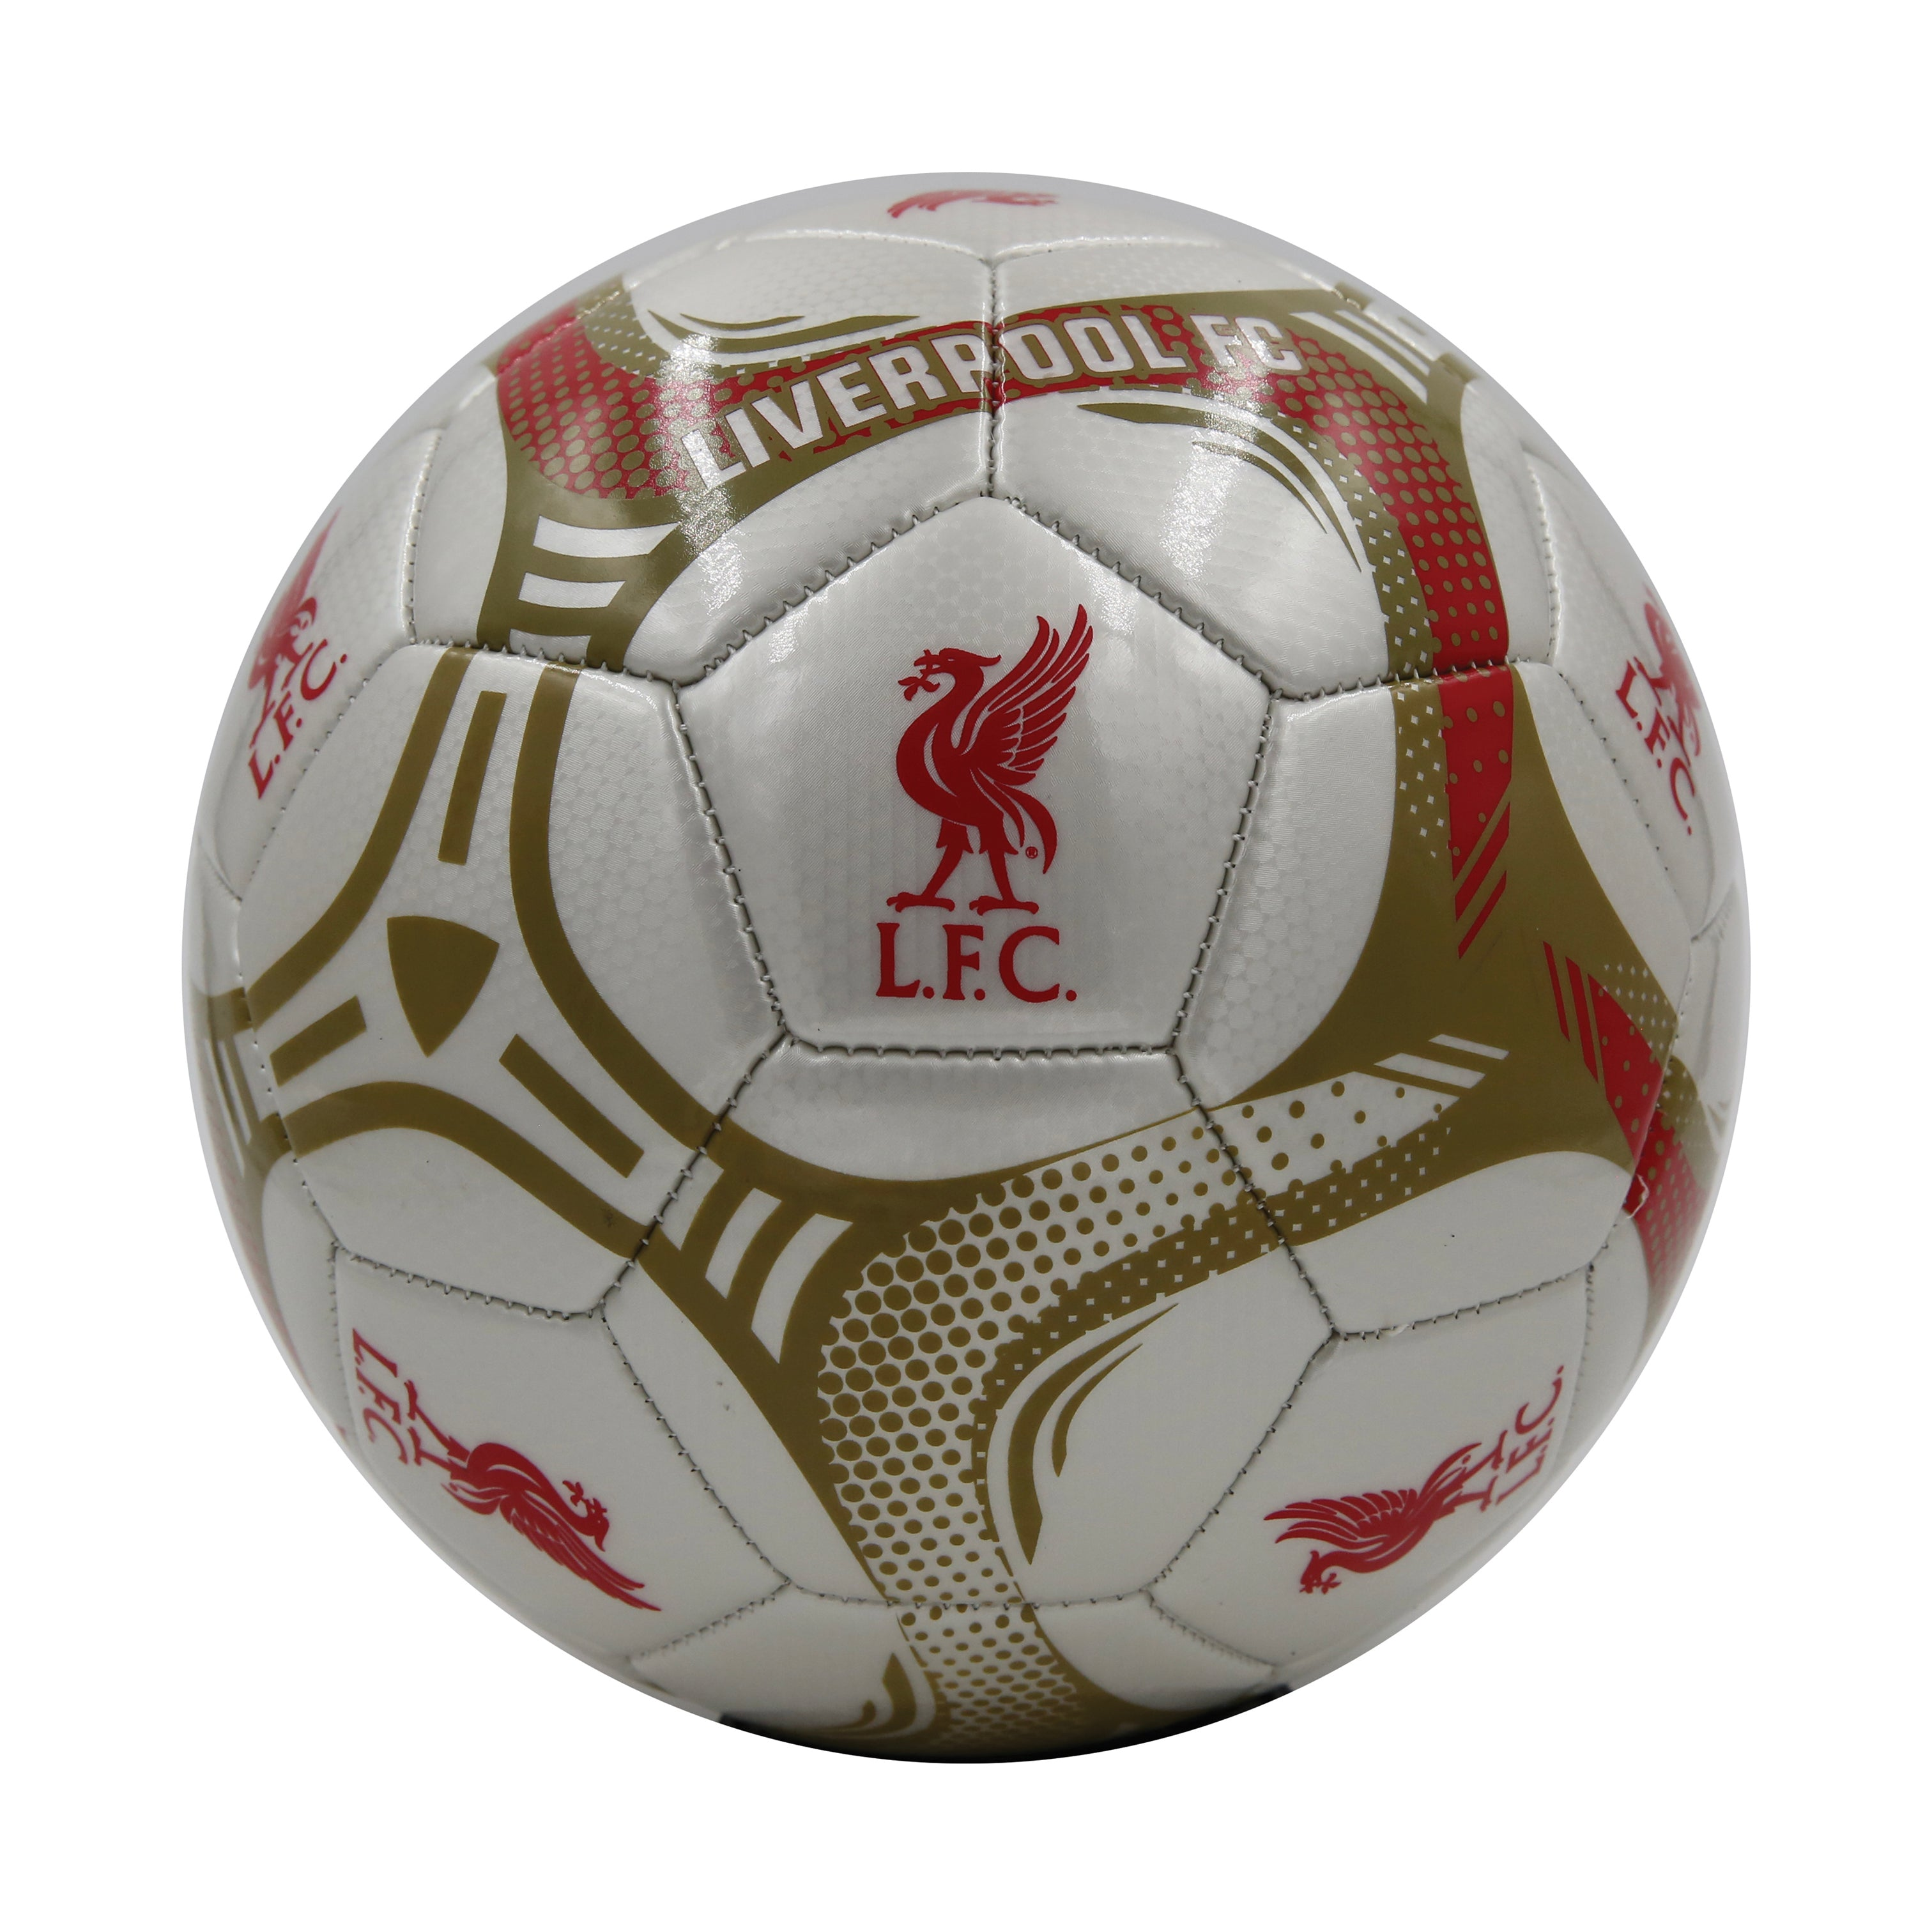 Liverpool FC White Comet Size 5 Soccer Ball by Icon Sports